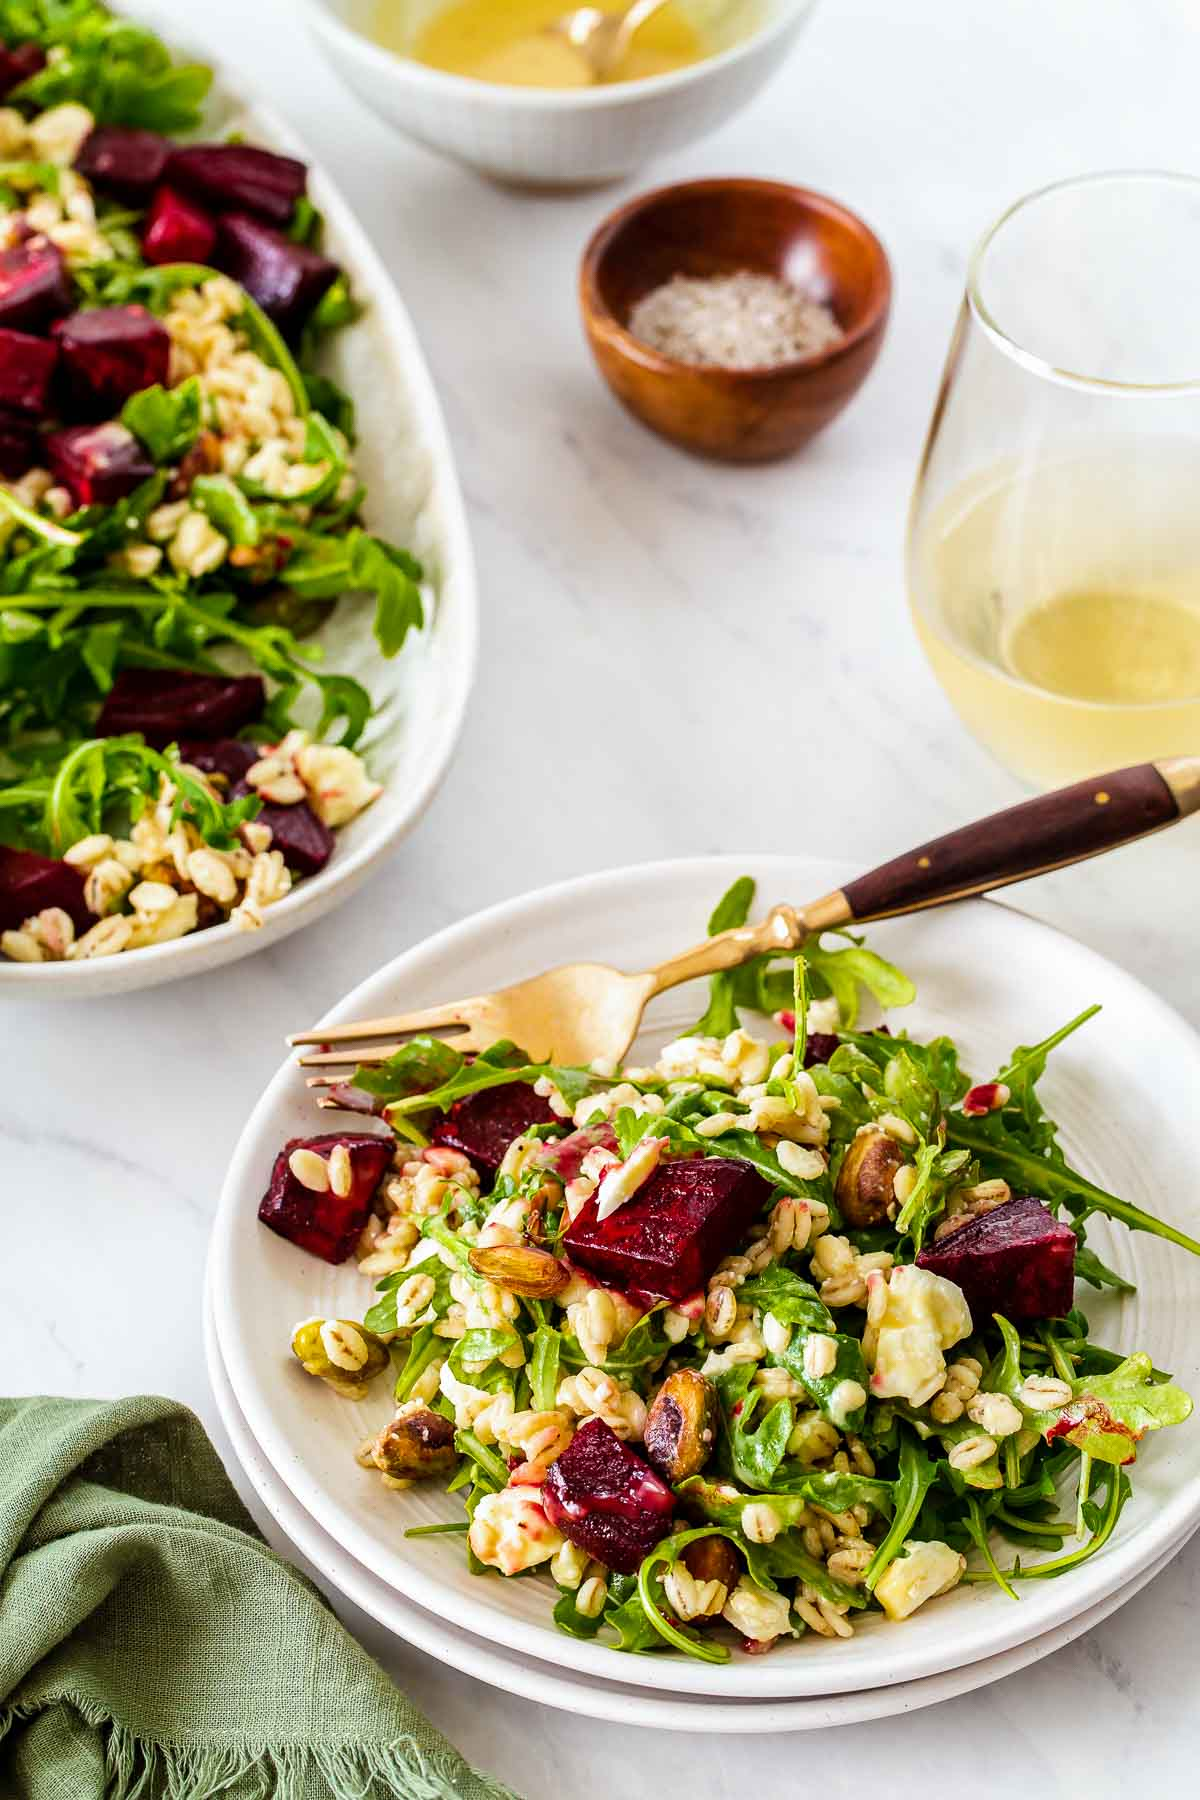 Two plates of beet salad with arugula and feta.